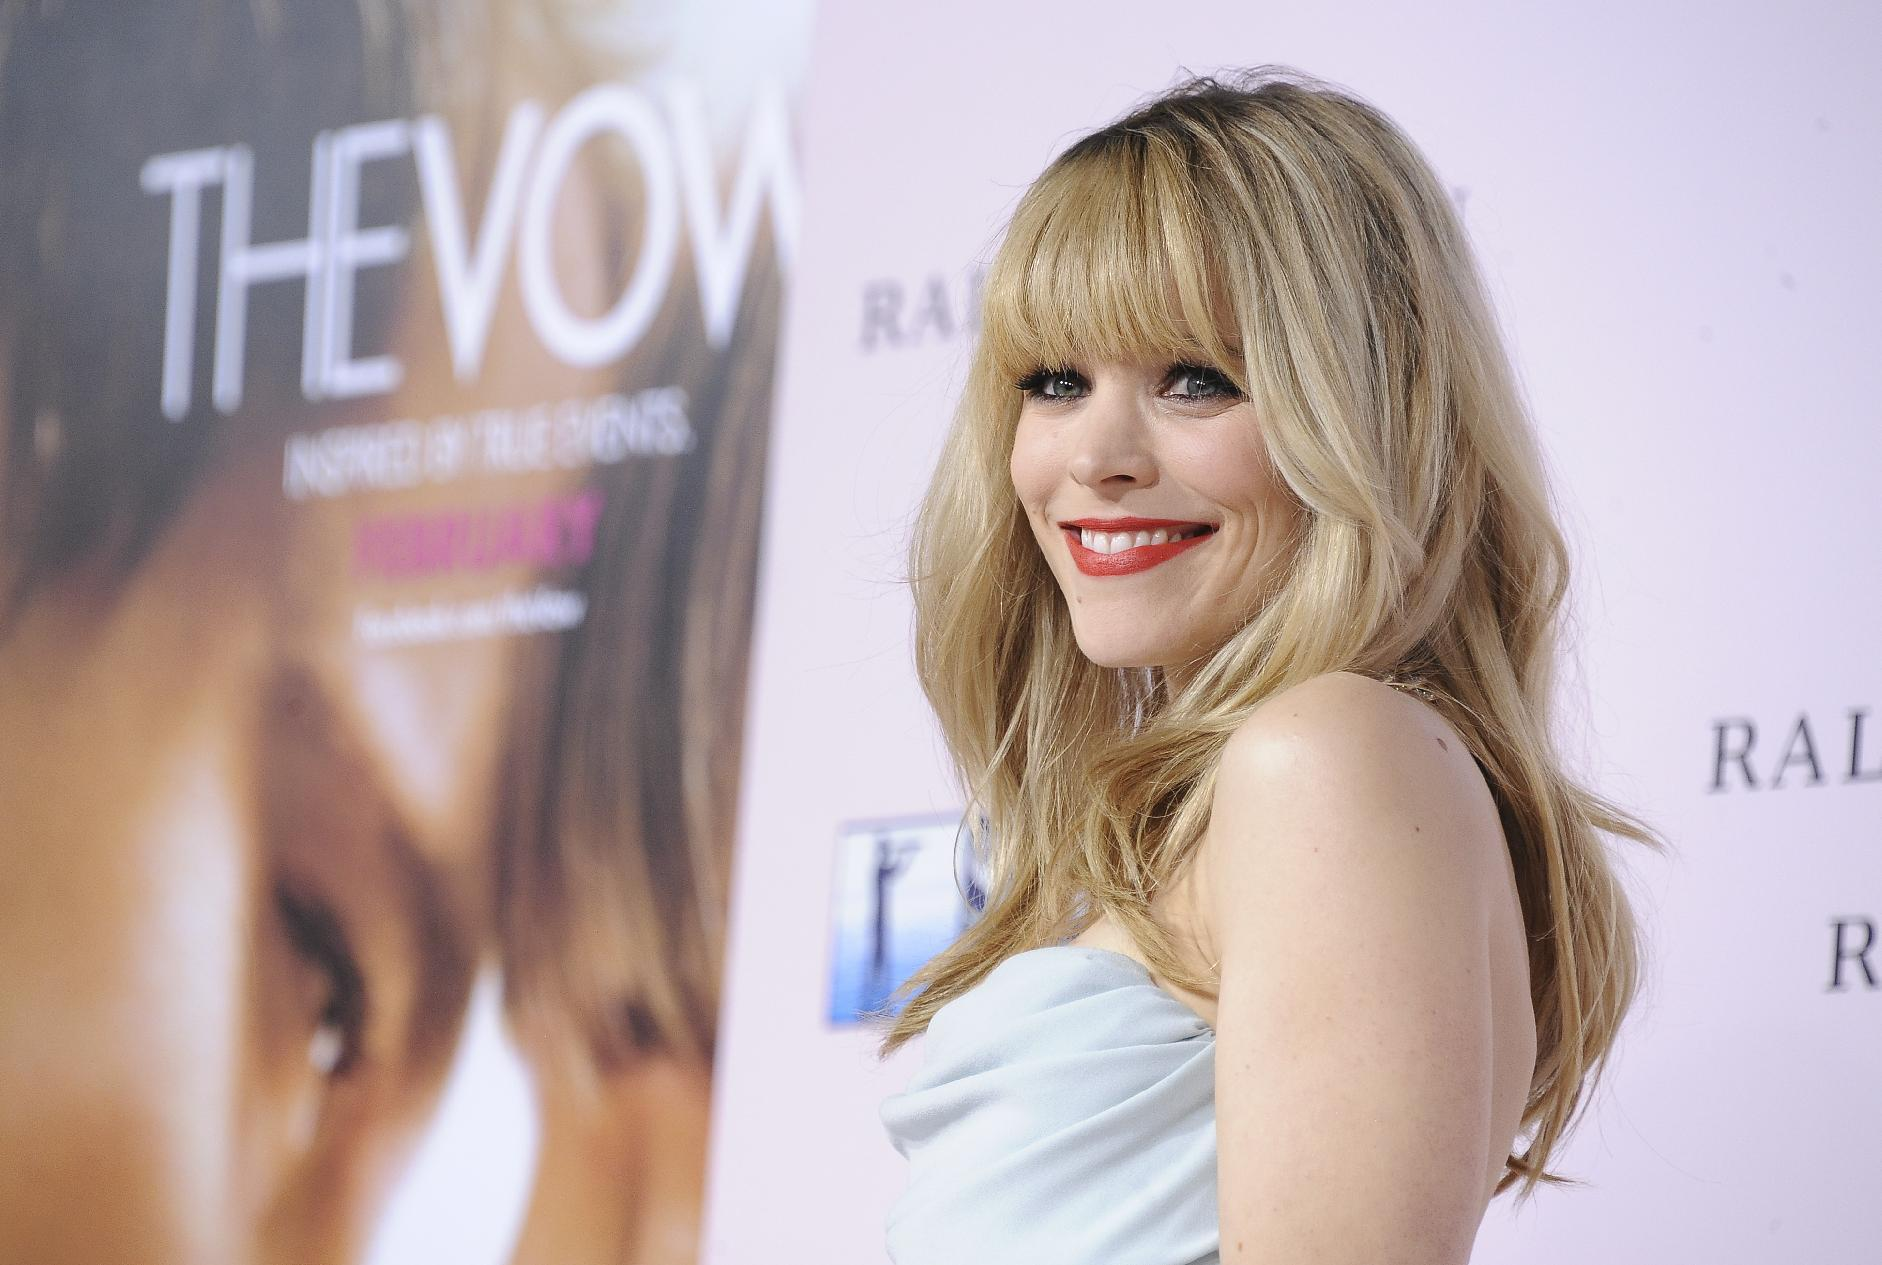 Rachel McAdams and Kelly Reilly join cast of 'True Detective'